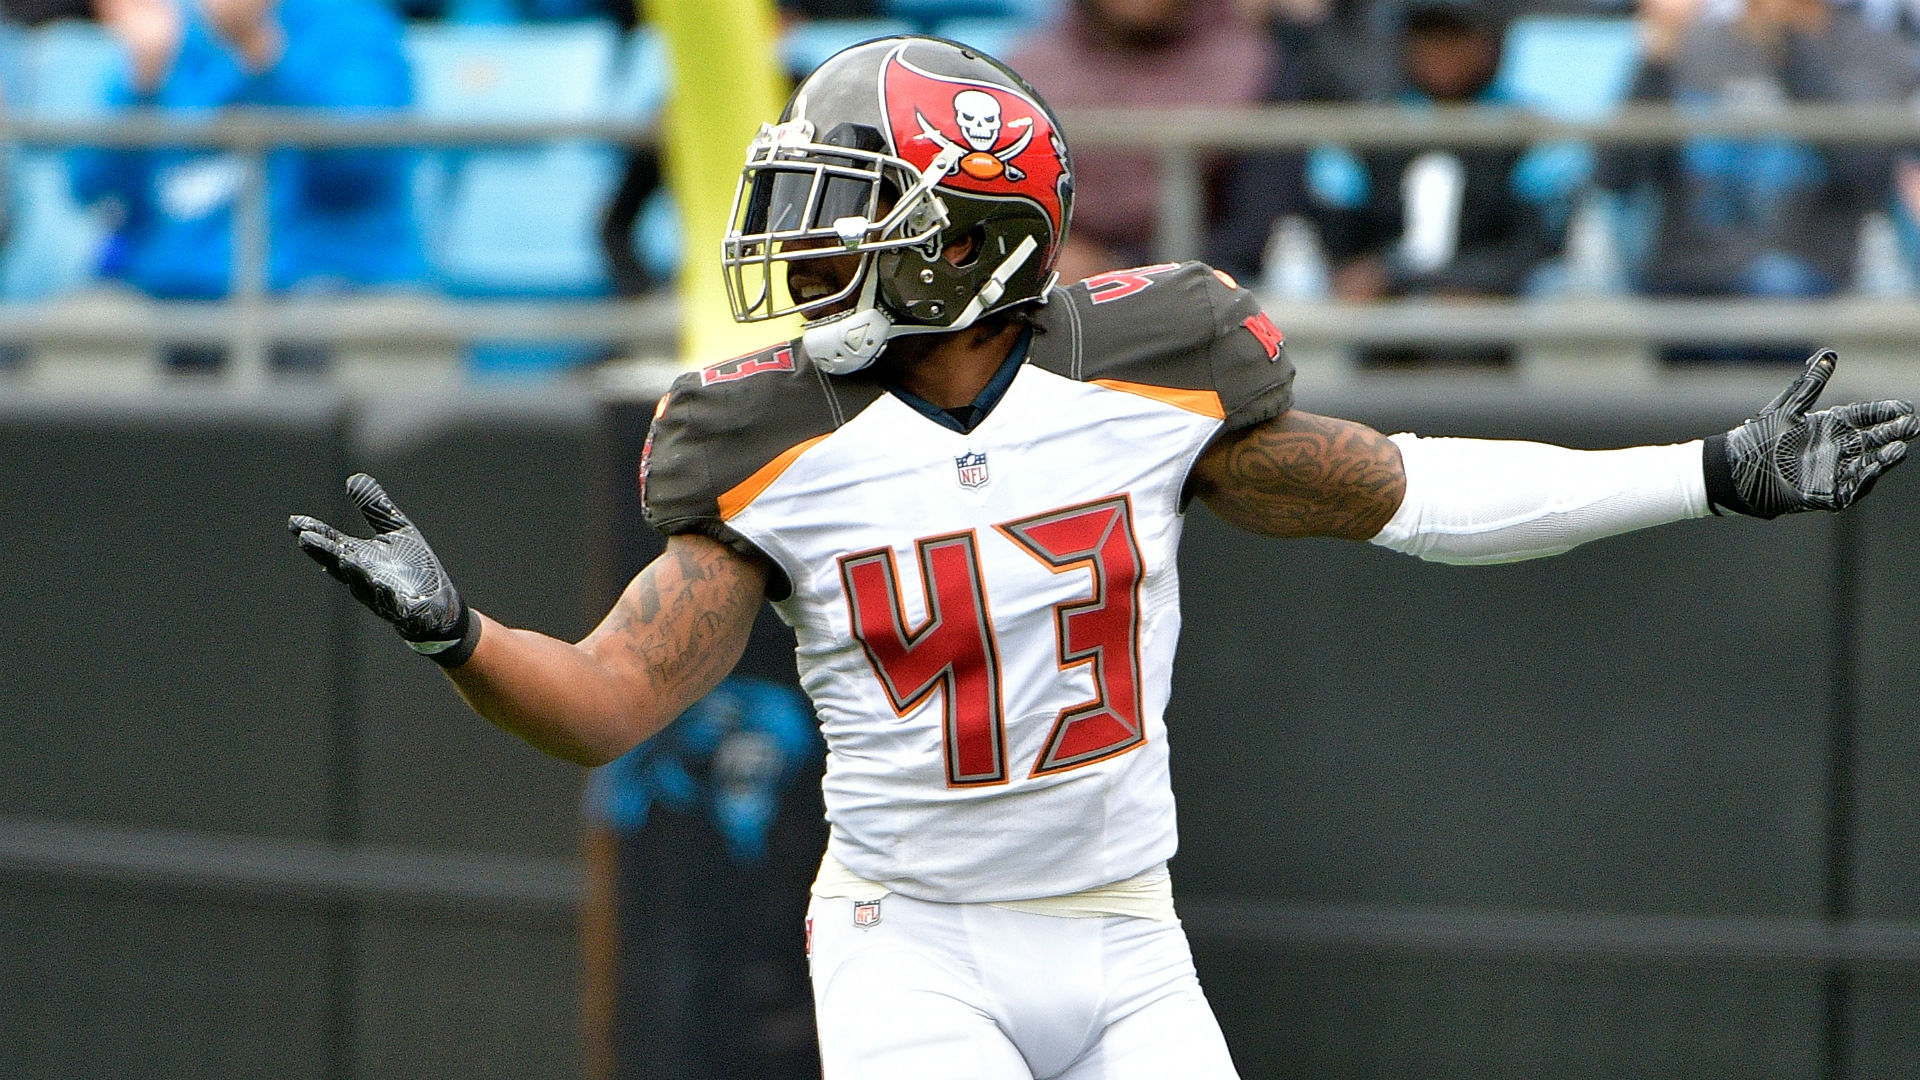 NFL free agency rumors: Pro Bowl safety T.J. Ward works out for Jaguars